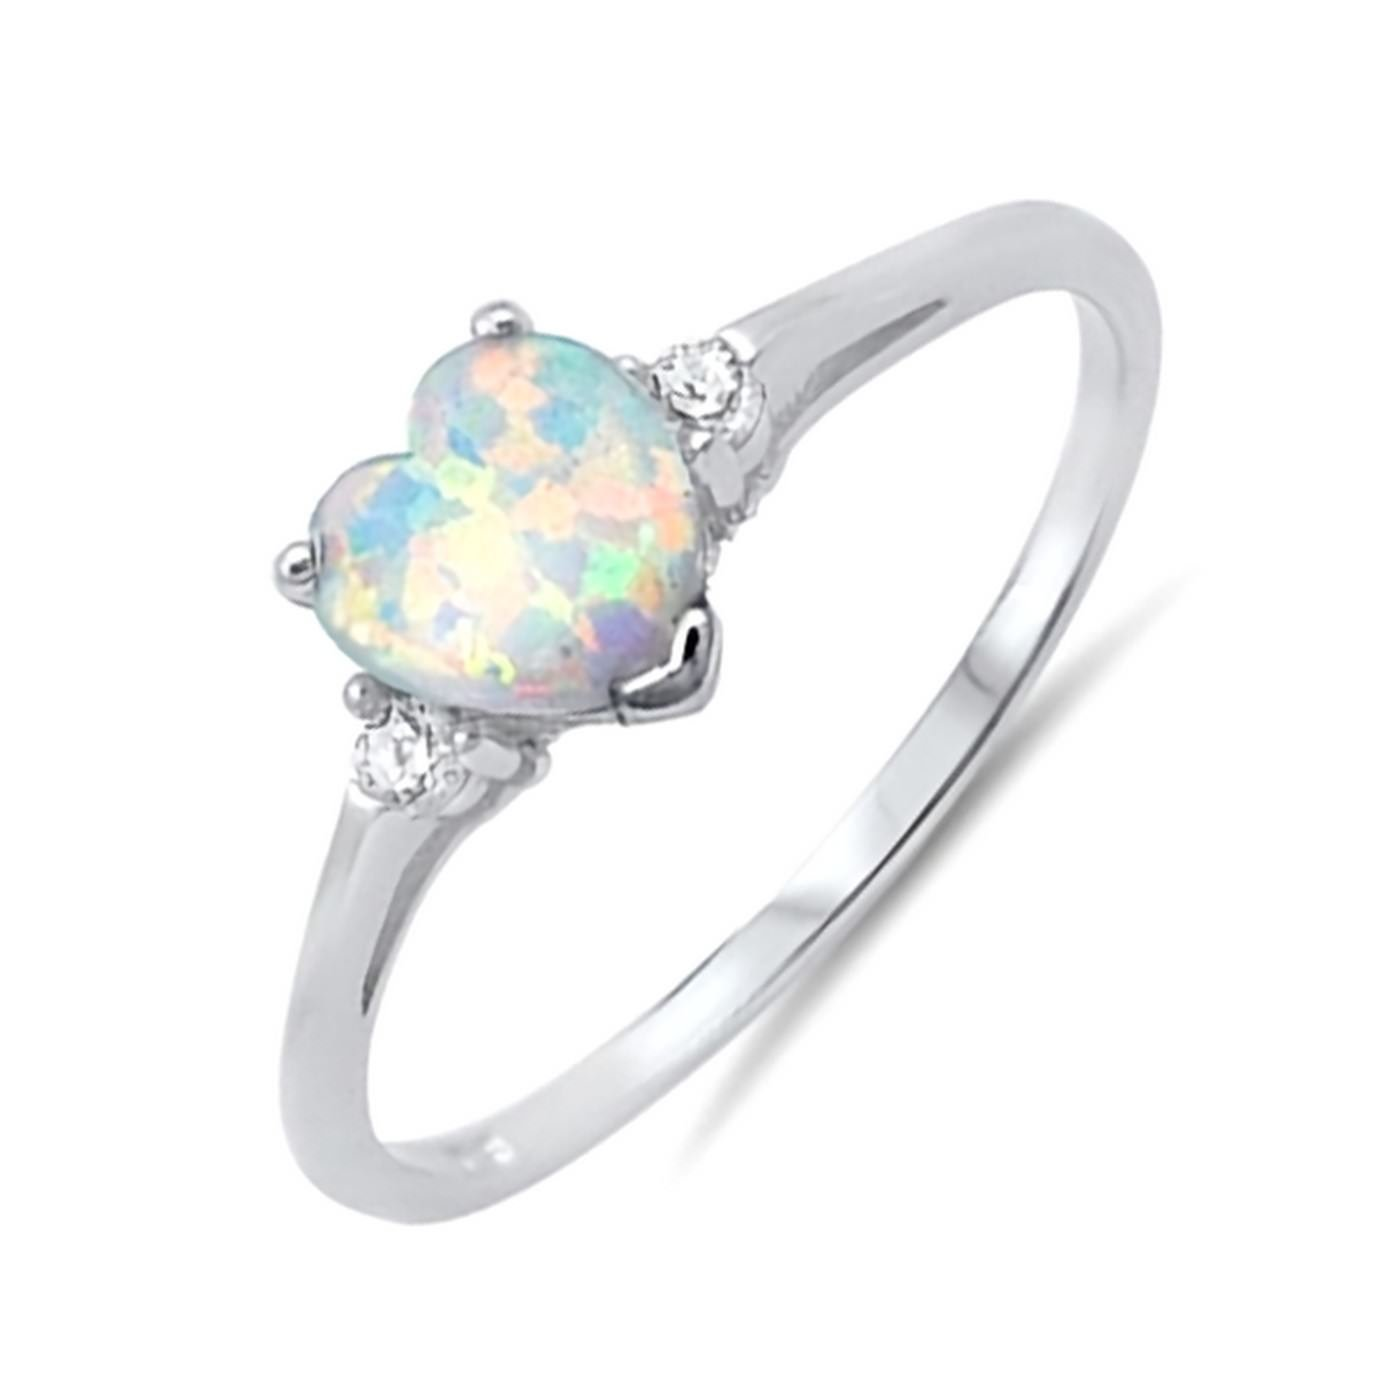 Childrens Girls Womens Rings Heart Lab Created Opal CZ Sterling Silver Gift Ideas Size 3 - White Opal